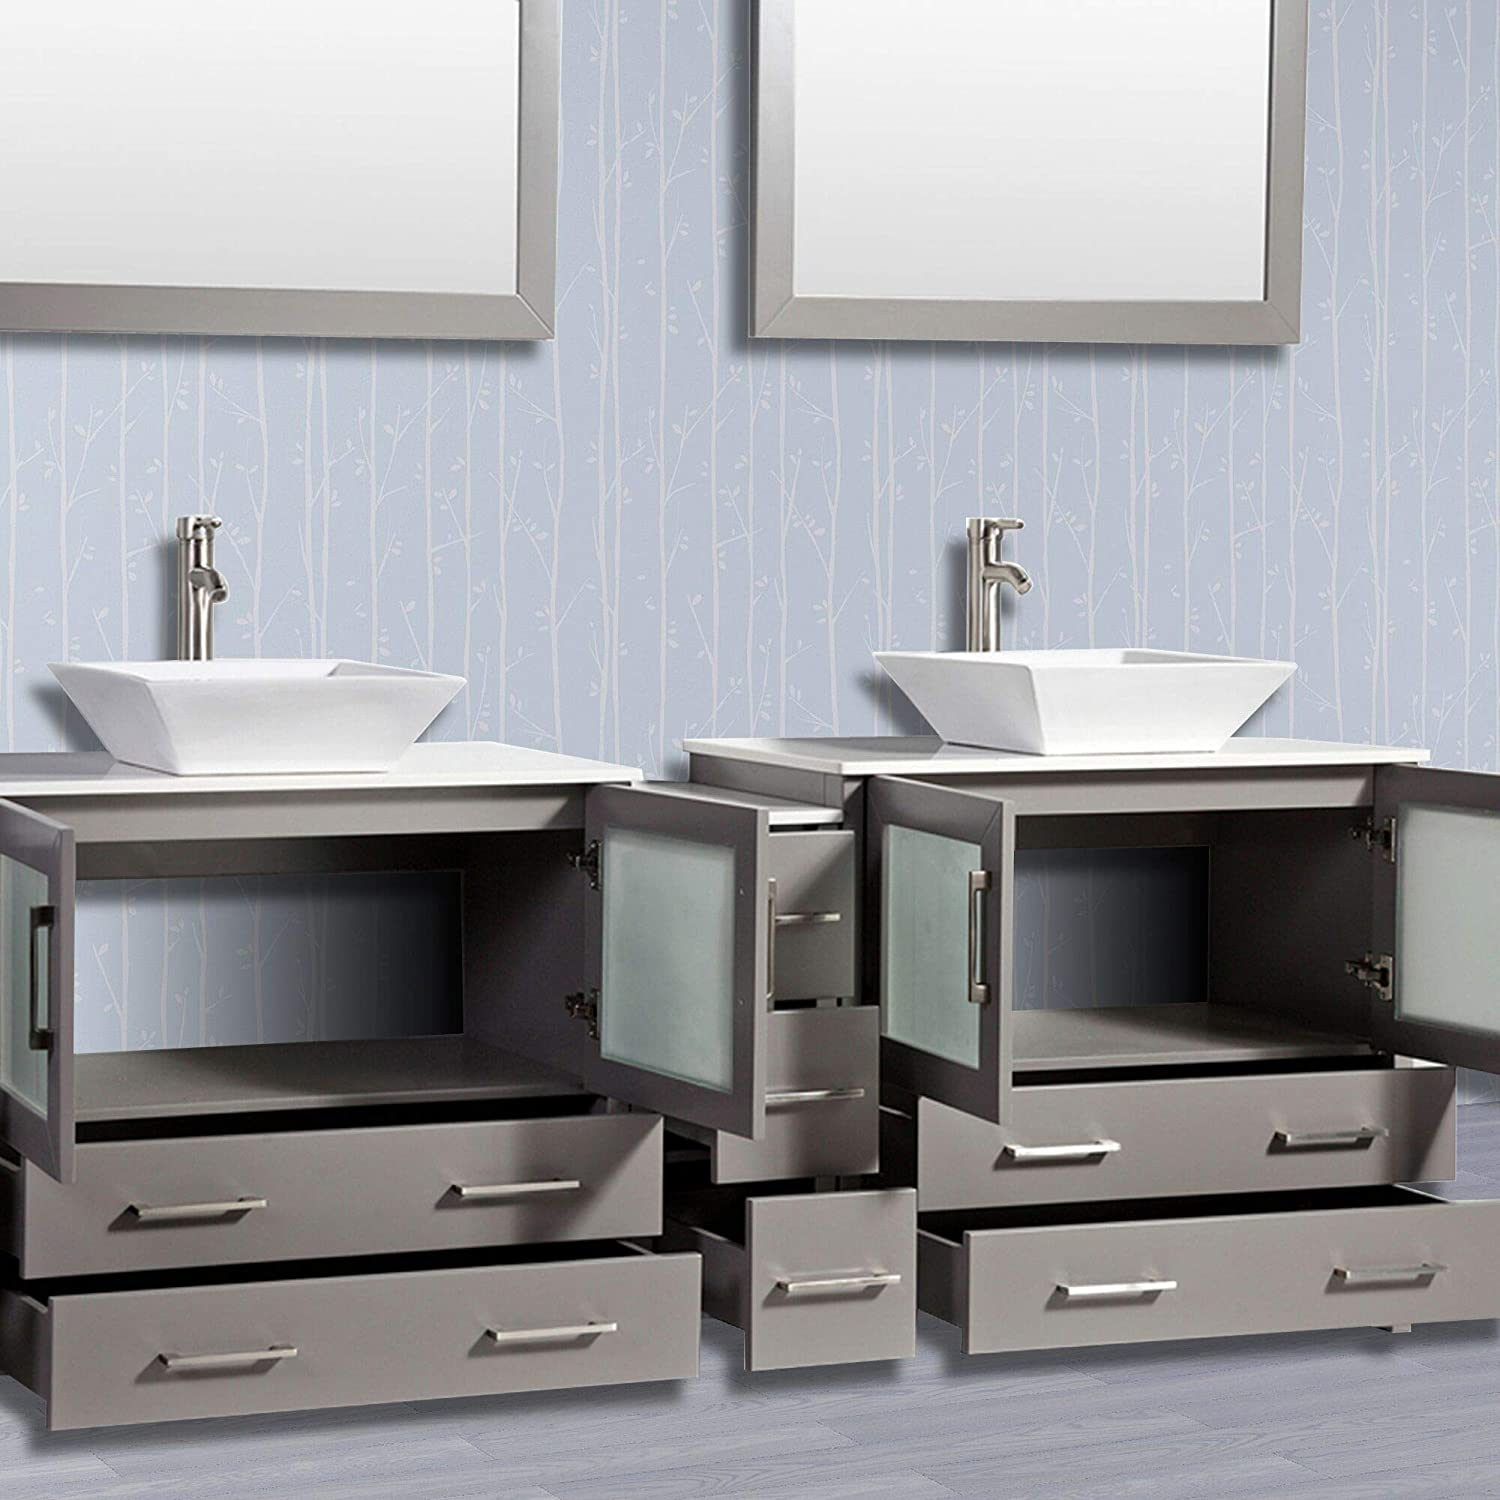 Buy Vanity Art 84 Inch Double Sink Bathroom Vanity Compact Set 3 Cabinets 2 Shelves 7 Dove Tailed Drawers Quartz Top And Ceramic Vessel Sink Bathroom Cabinet With Free Mirror Va3136 84 G Online In